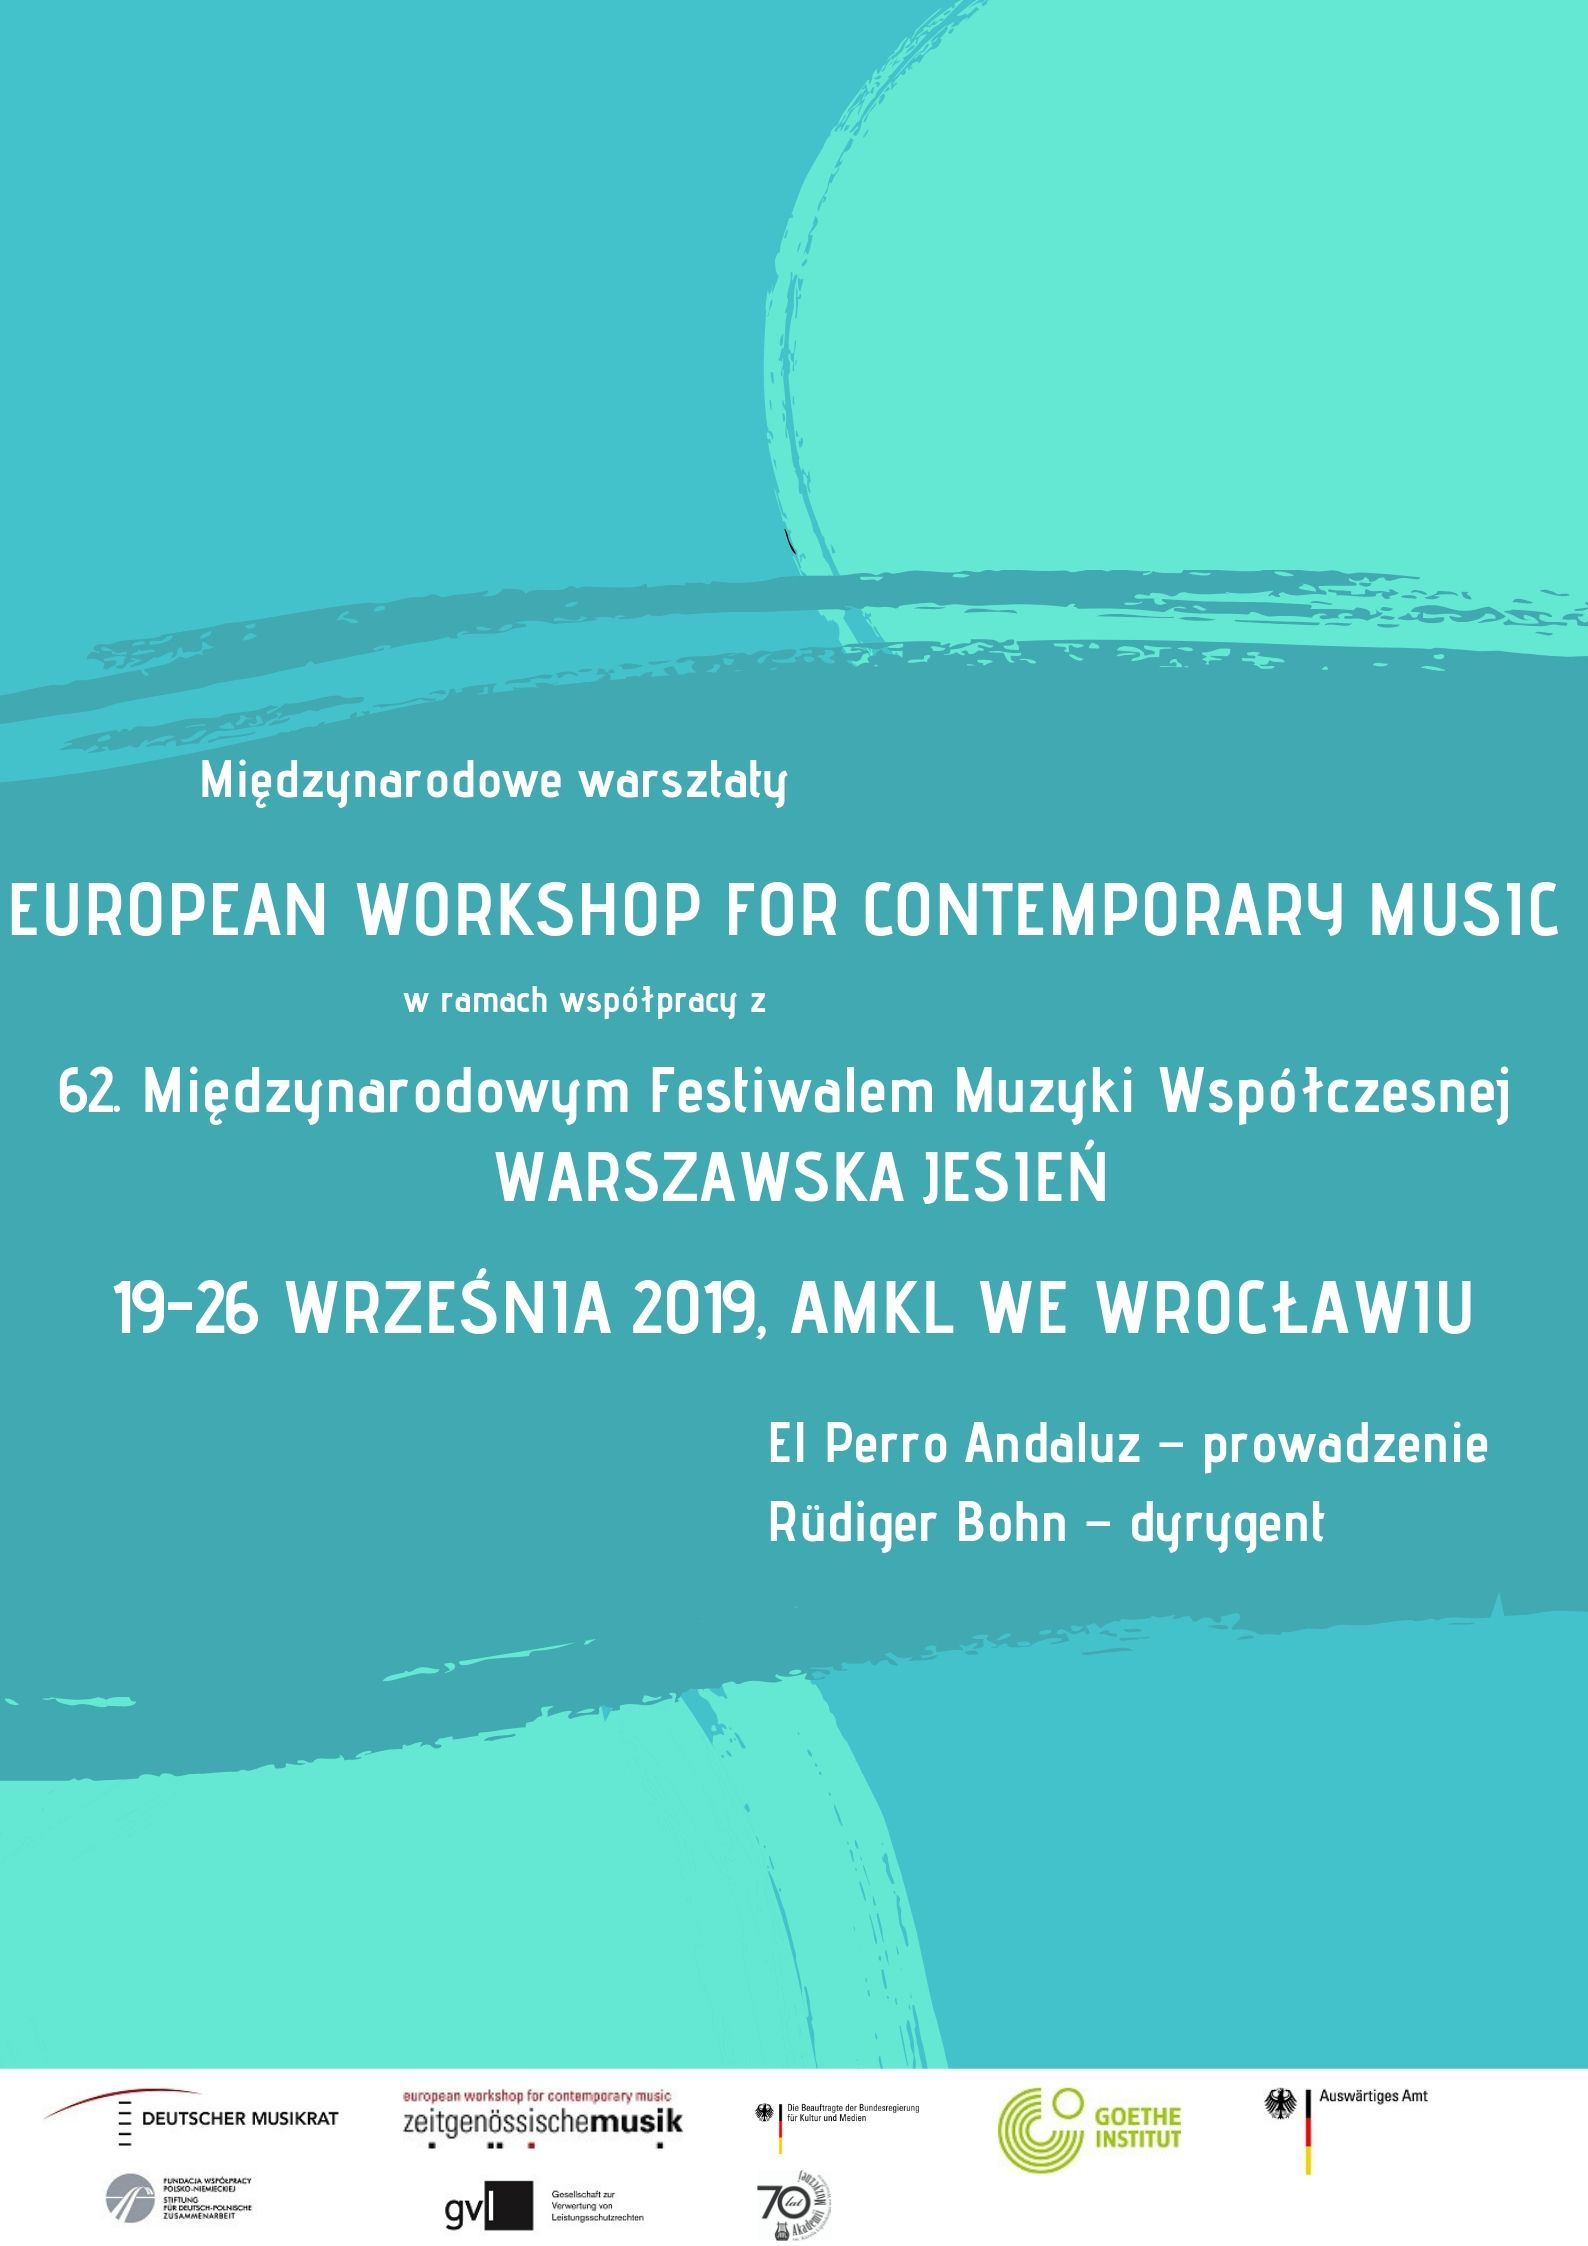 European Workshop for Contemporary Music 2019